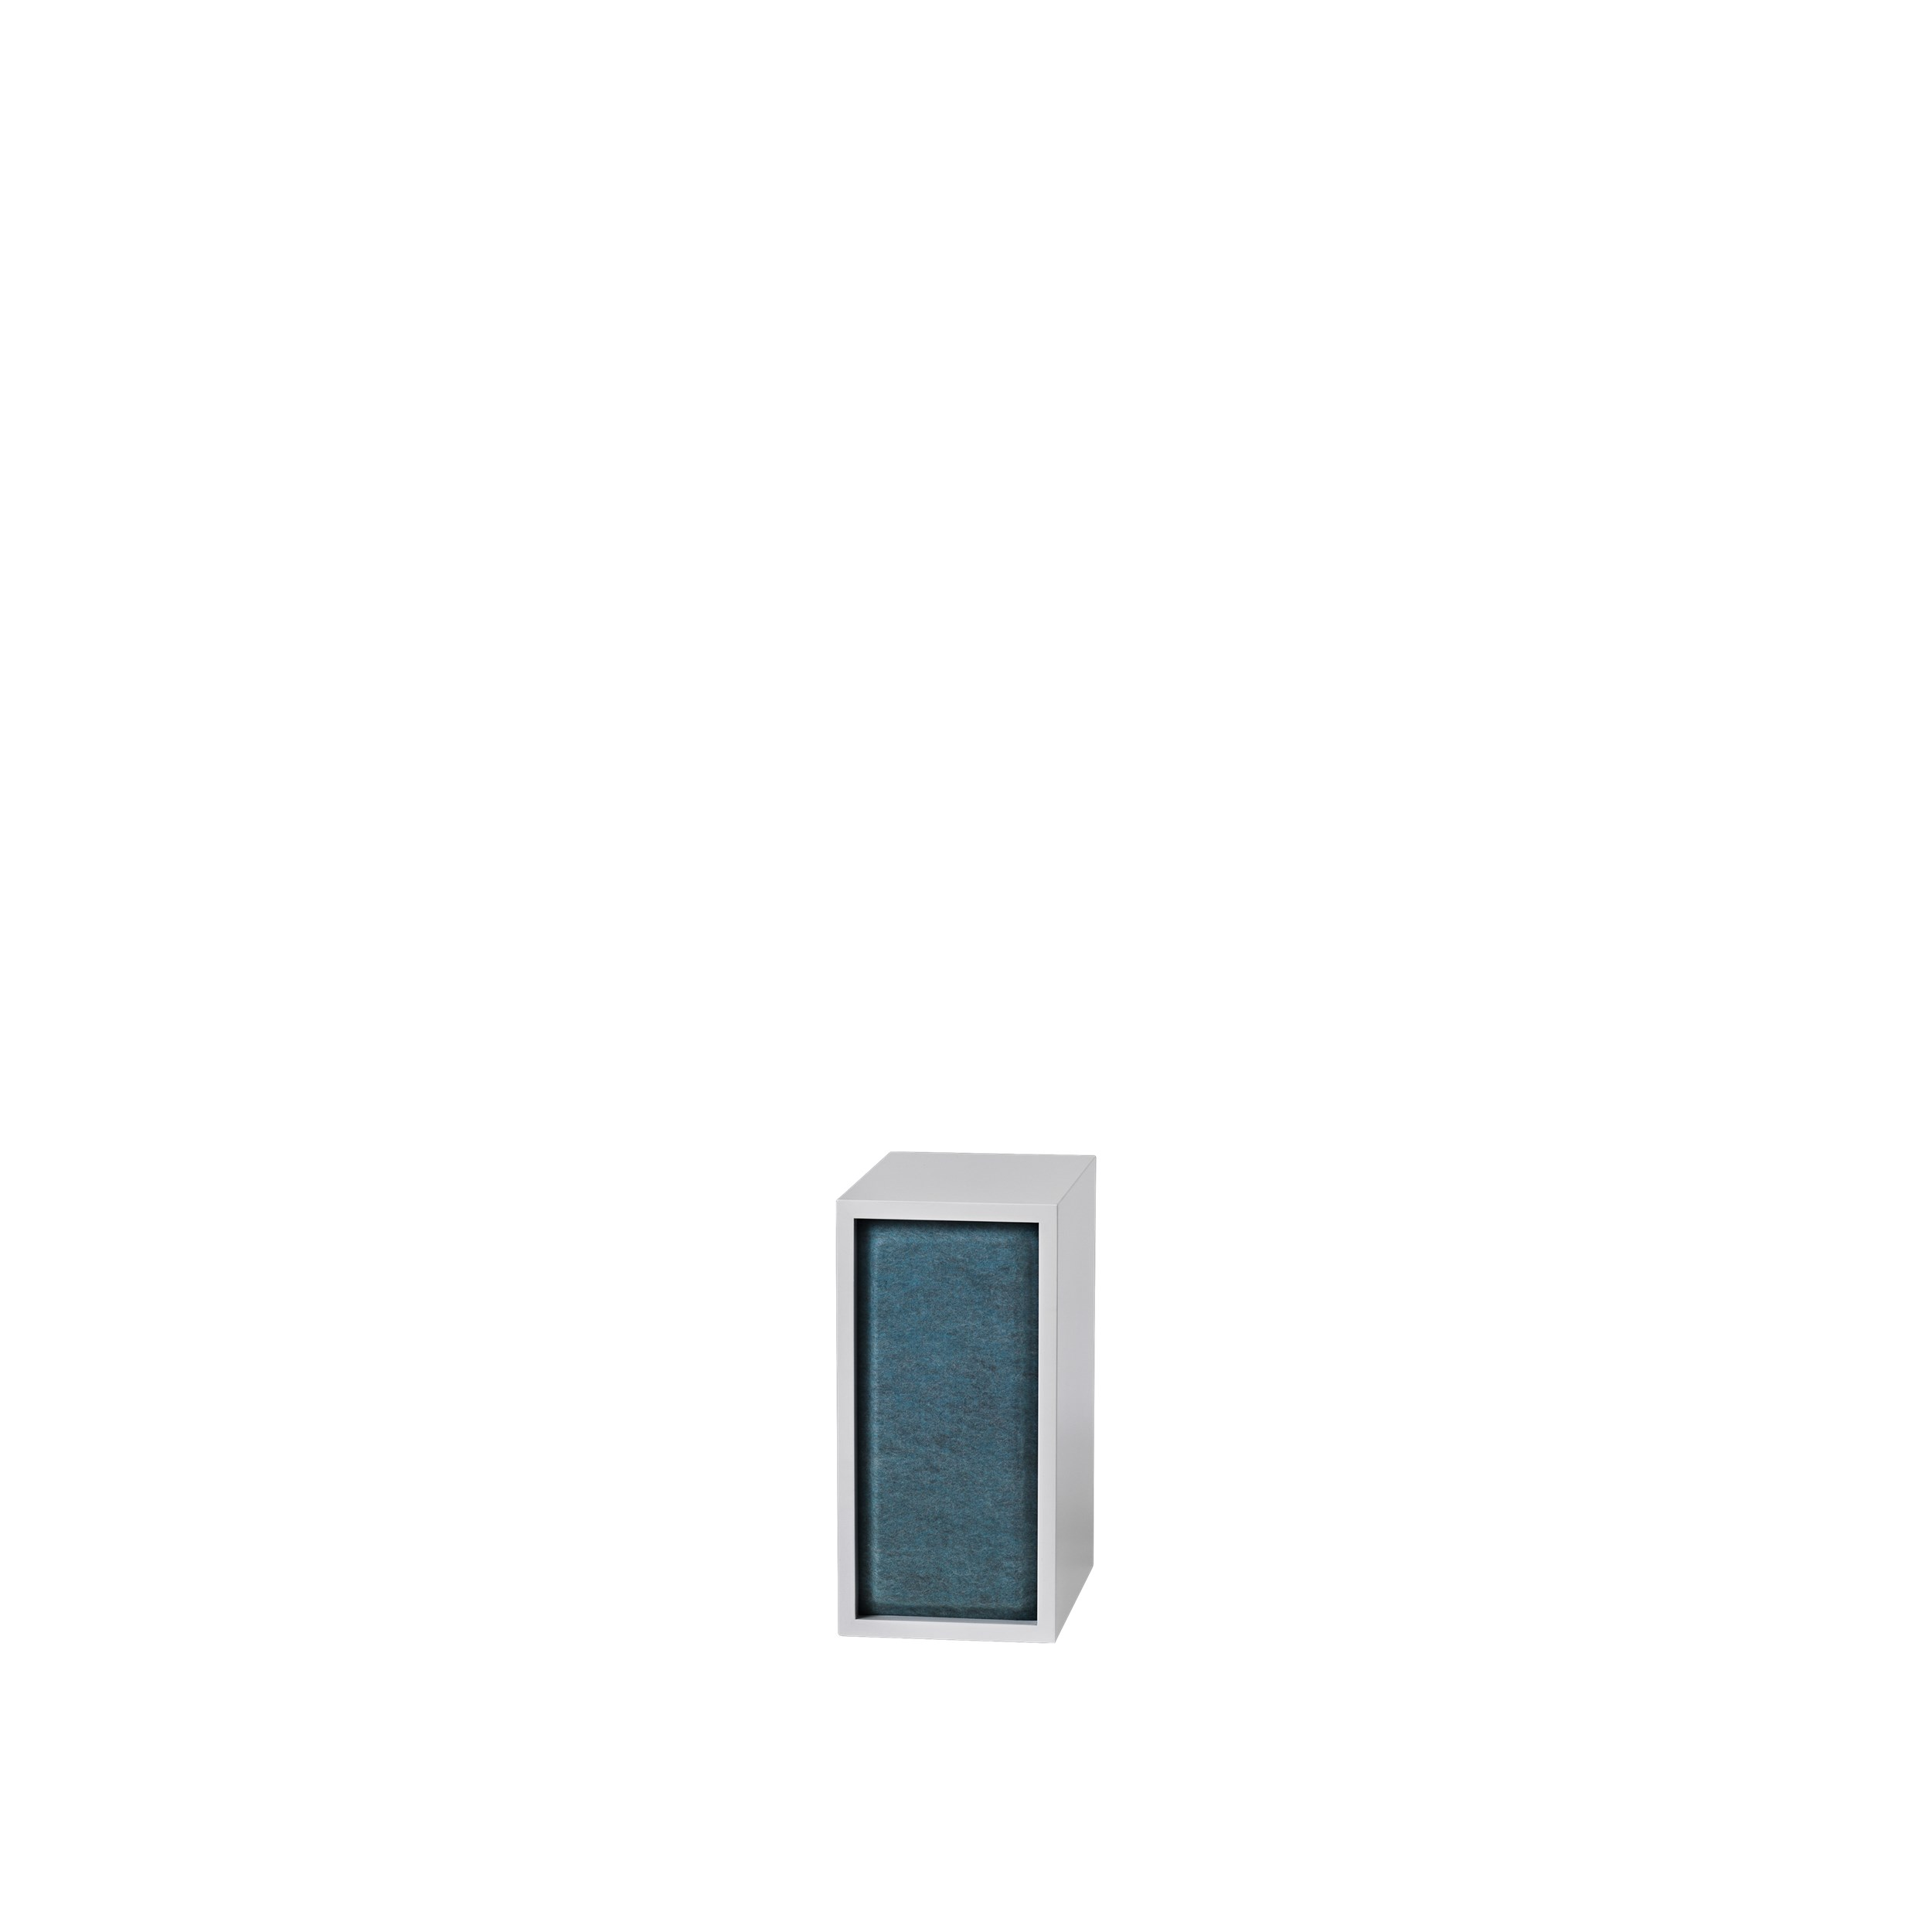 Stacked 2.0 acoustic panel small aqua